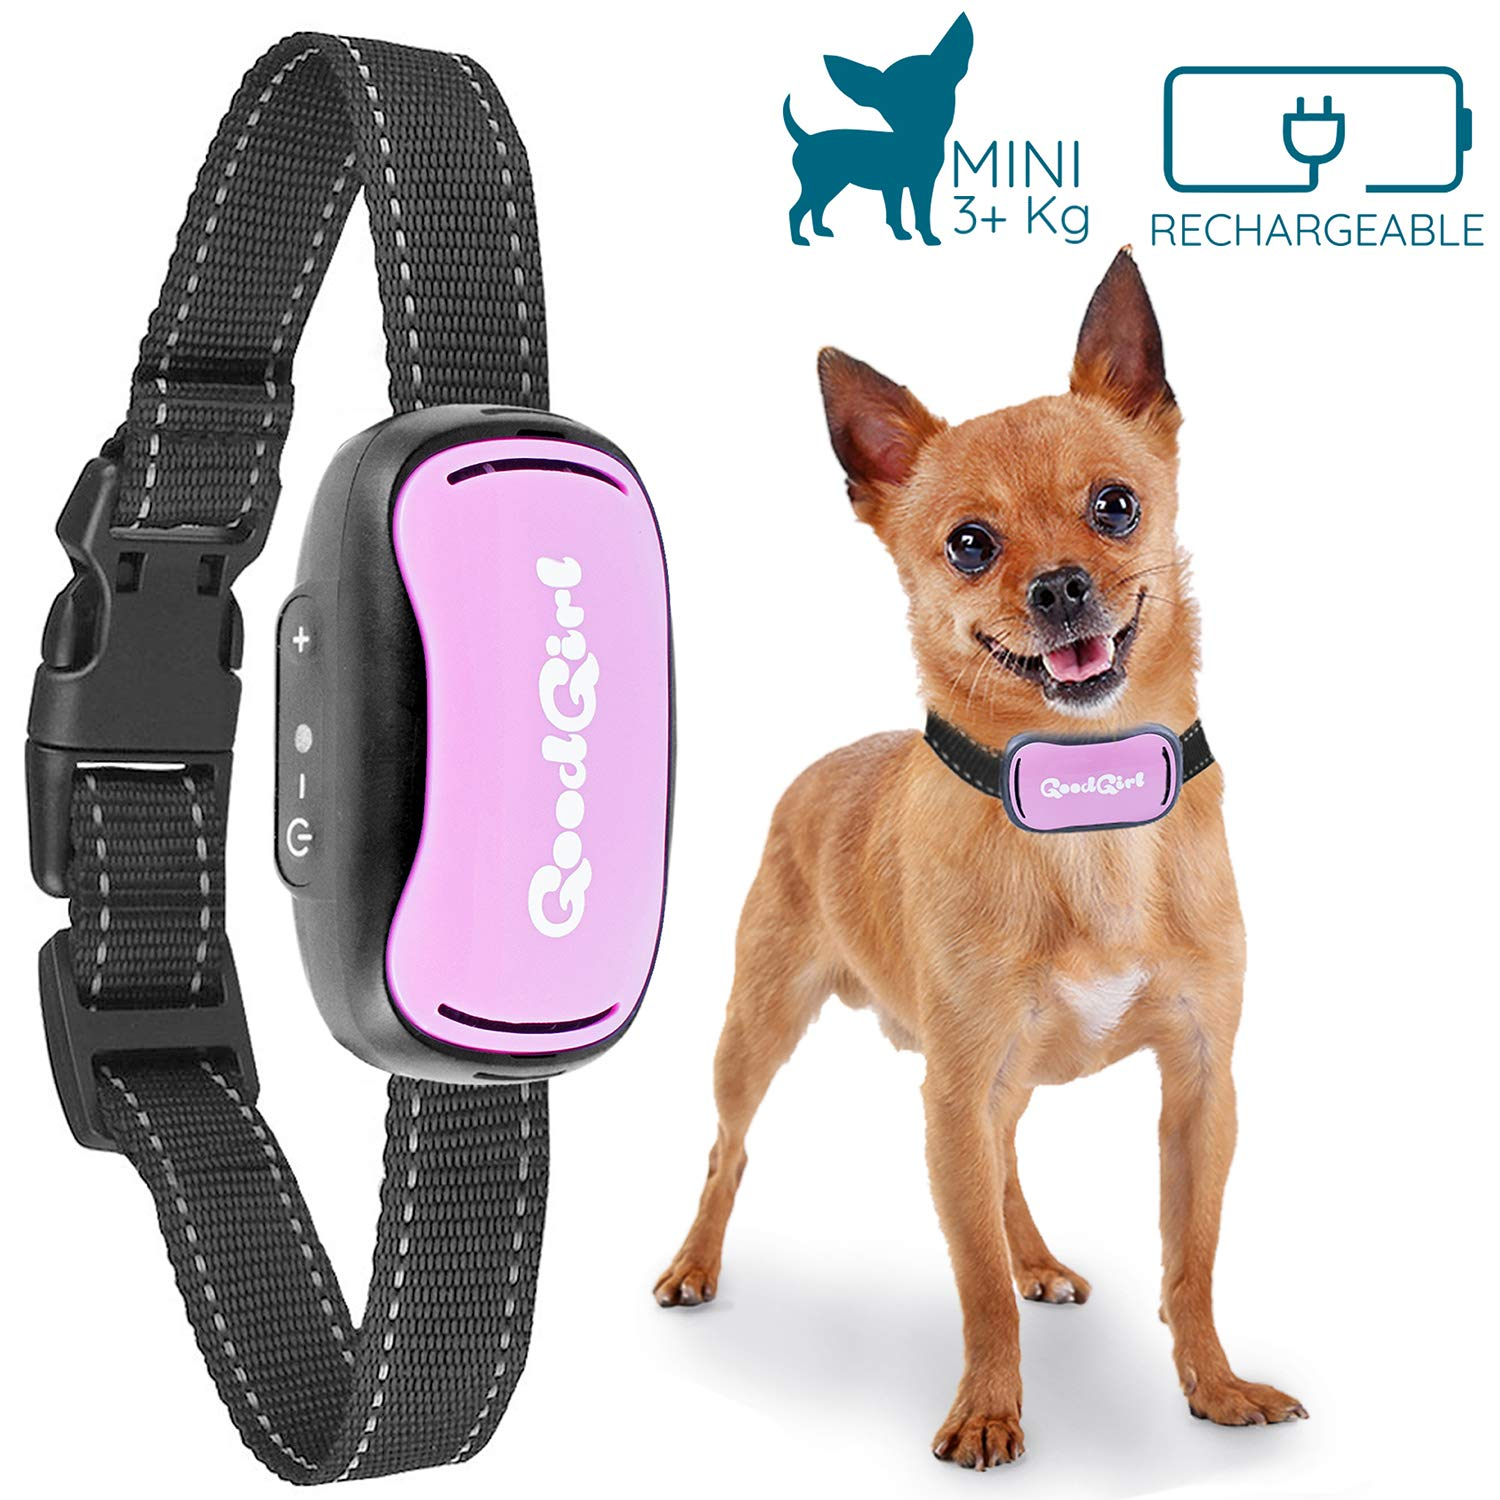 GoodBoy Small Dog Bark Collar Rechargeable And Weatherproof Vibrating Bark Deterrent for Small And Medium Dogs 3+kg (Pink)